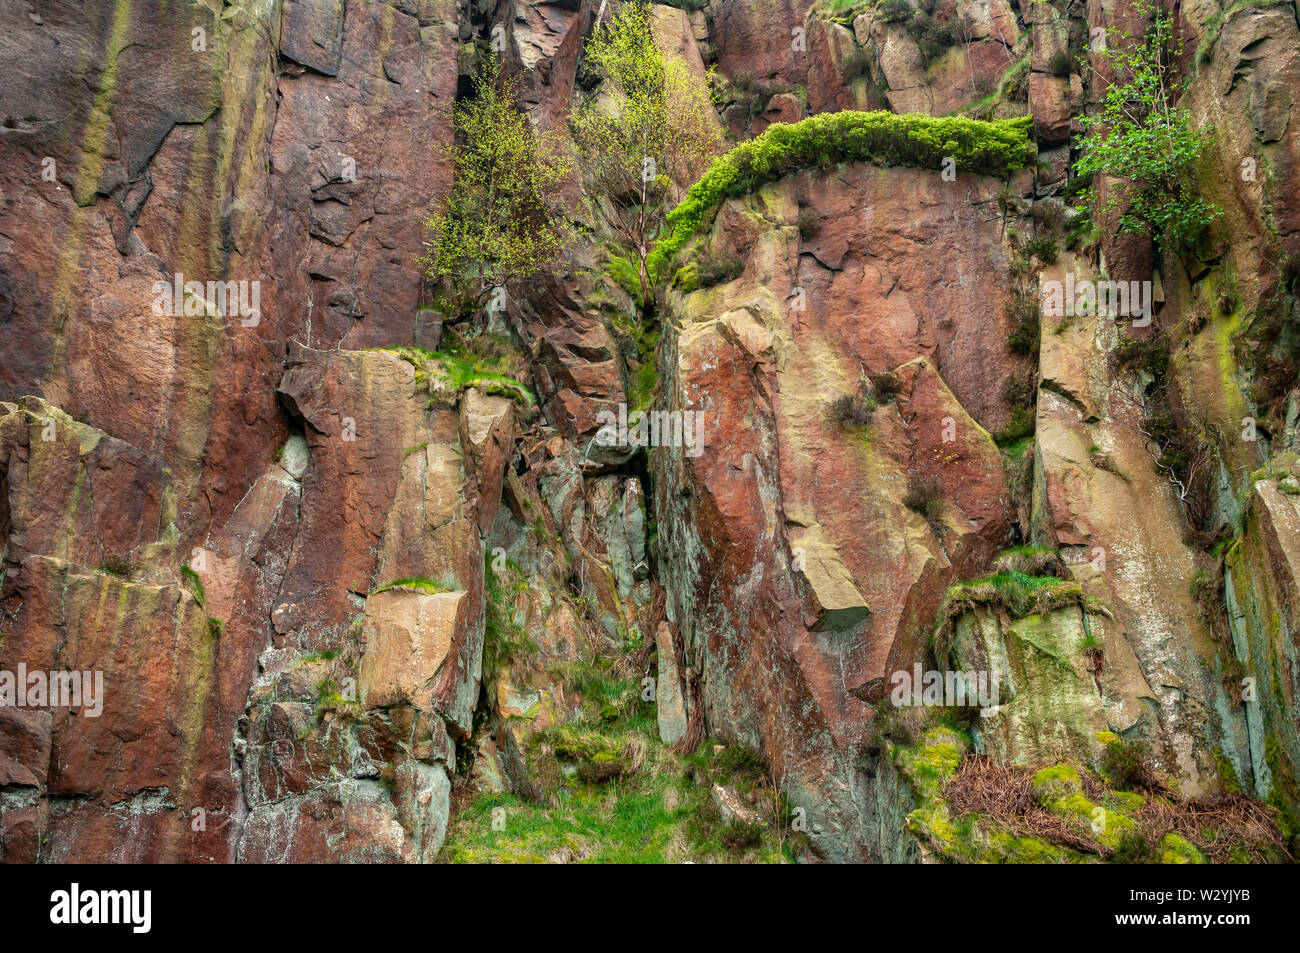 Landscape format view of an overhanging outcrop of rock topped with bilberry bushes at Millstone Edge Quarry near Hathersage. Stock Photo